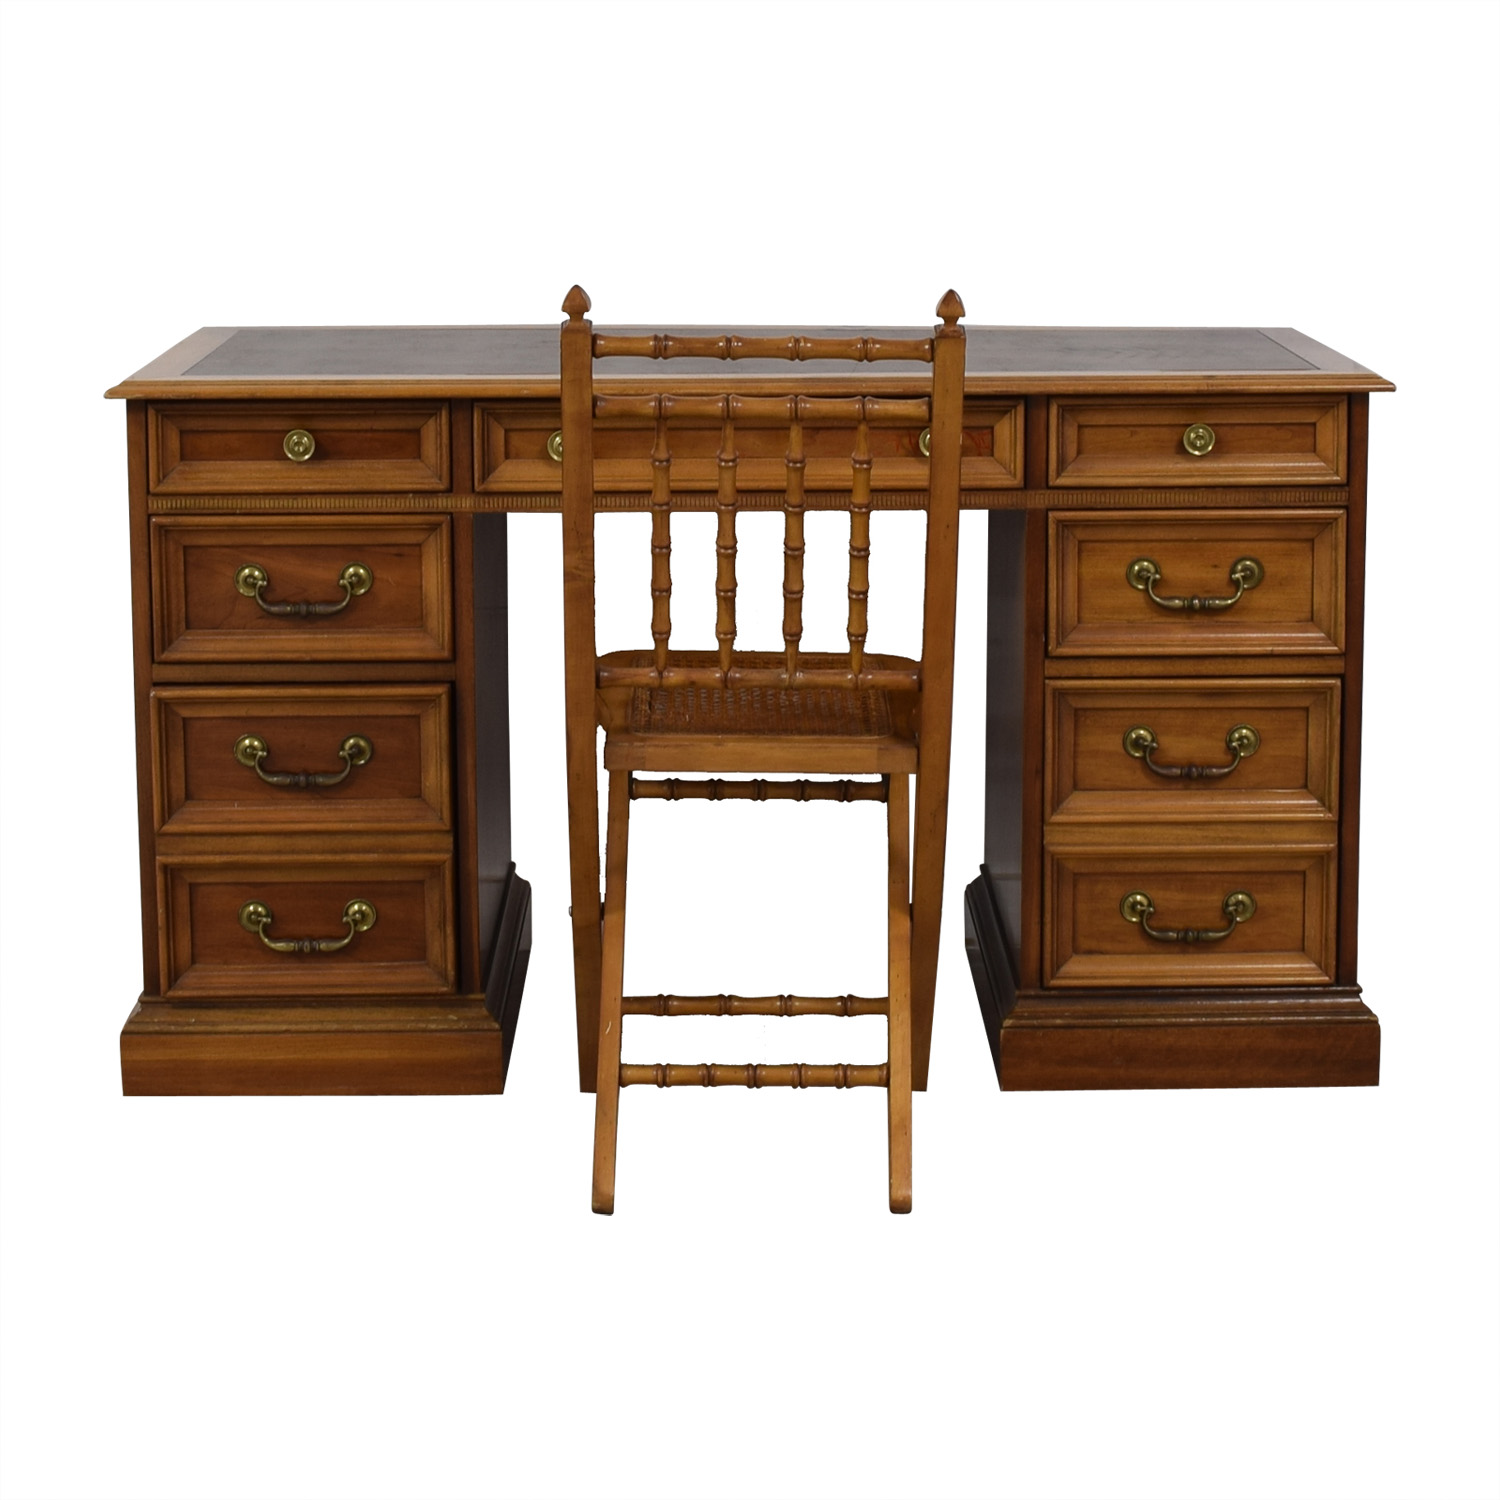 Vintage Writing Desk with Chair sale